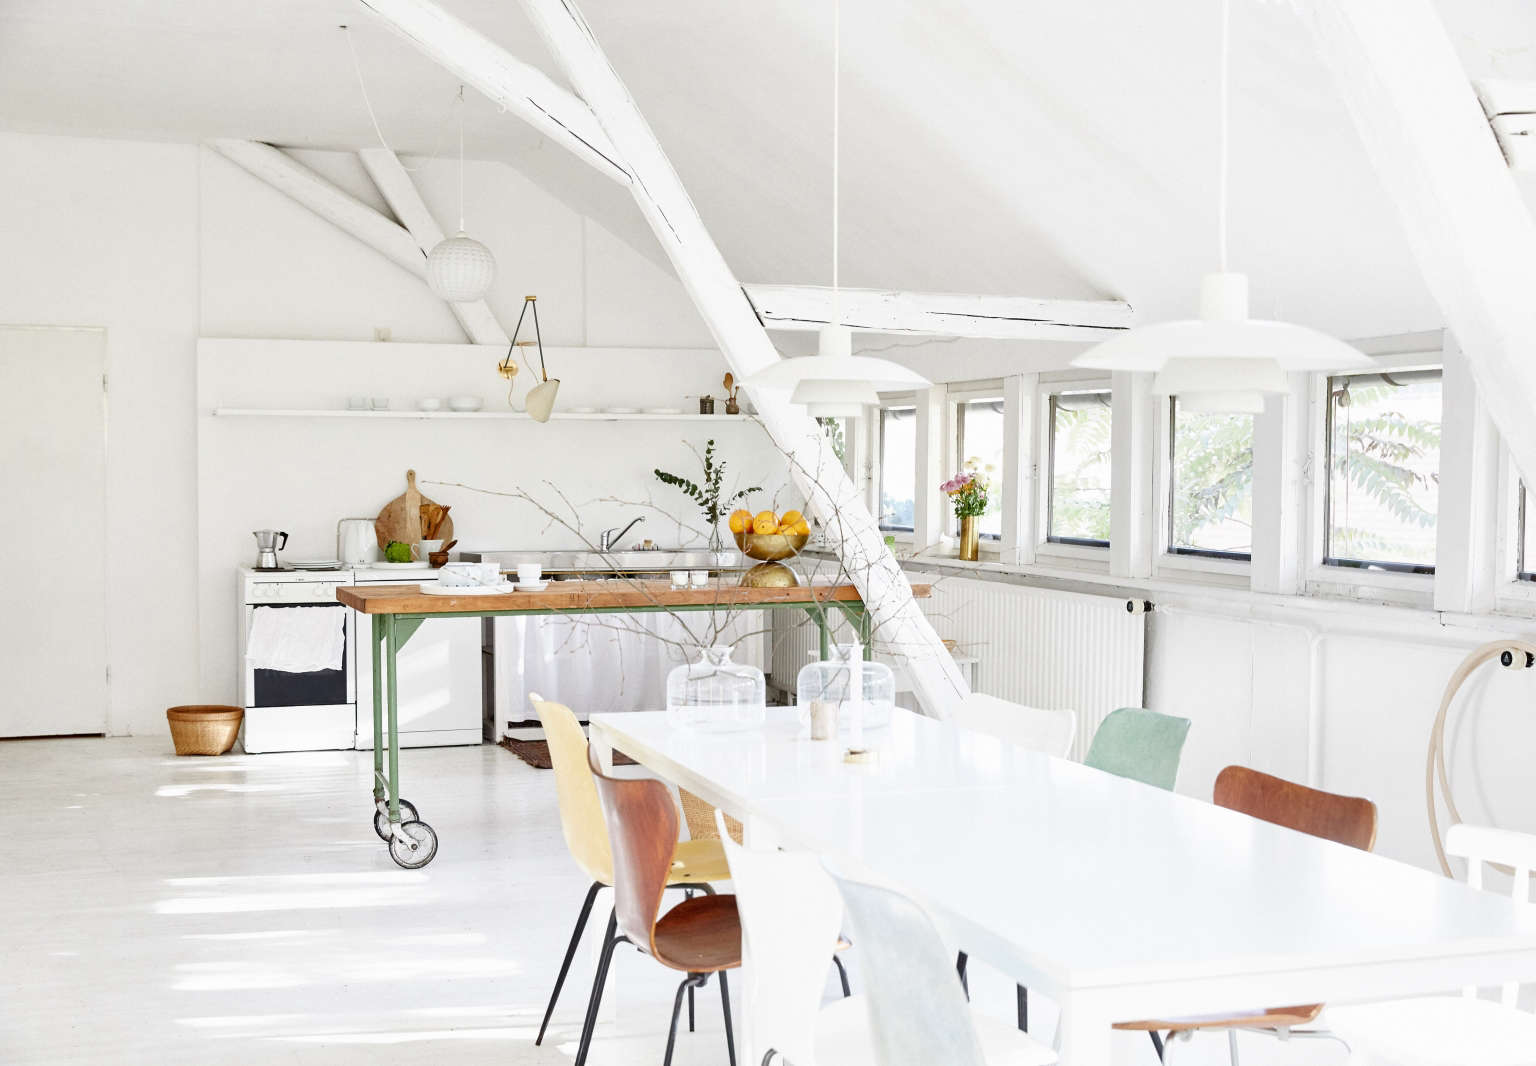 Living above the studio: at home with Lappalainen